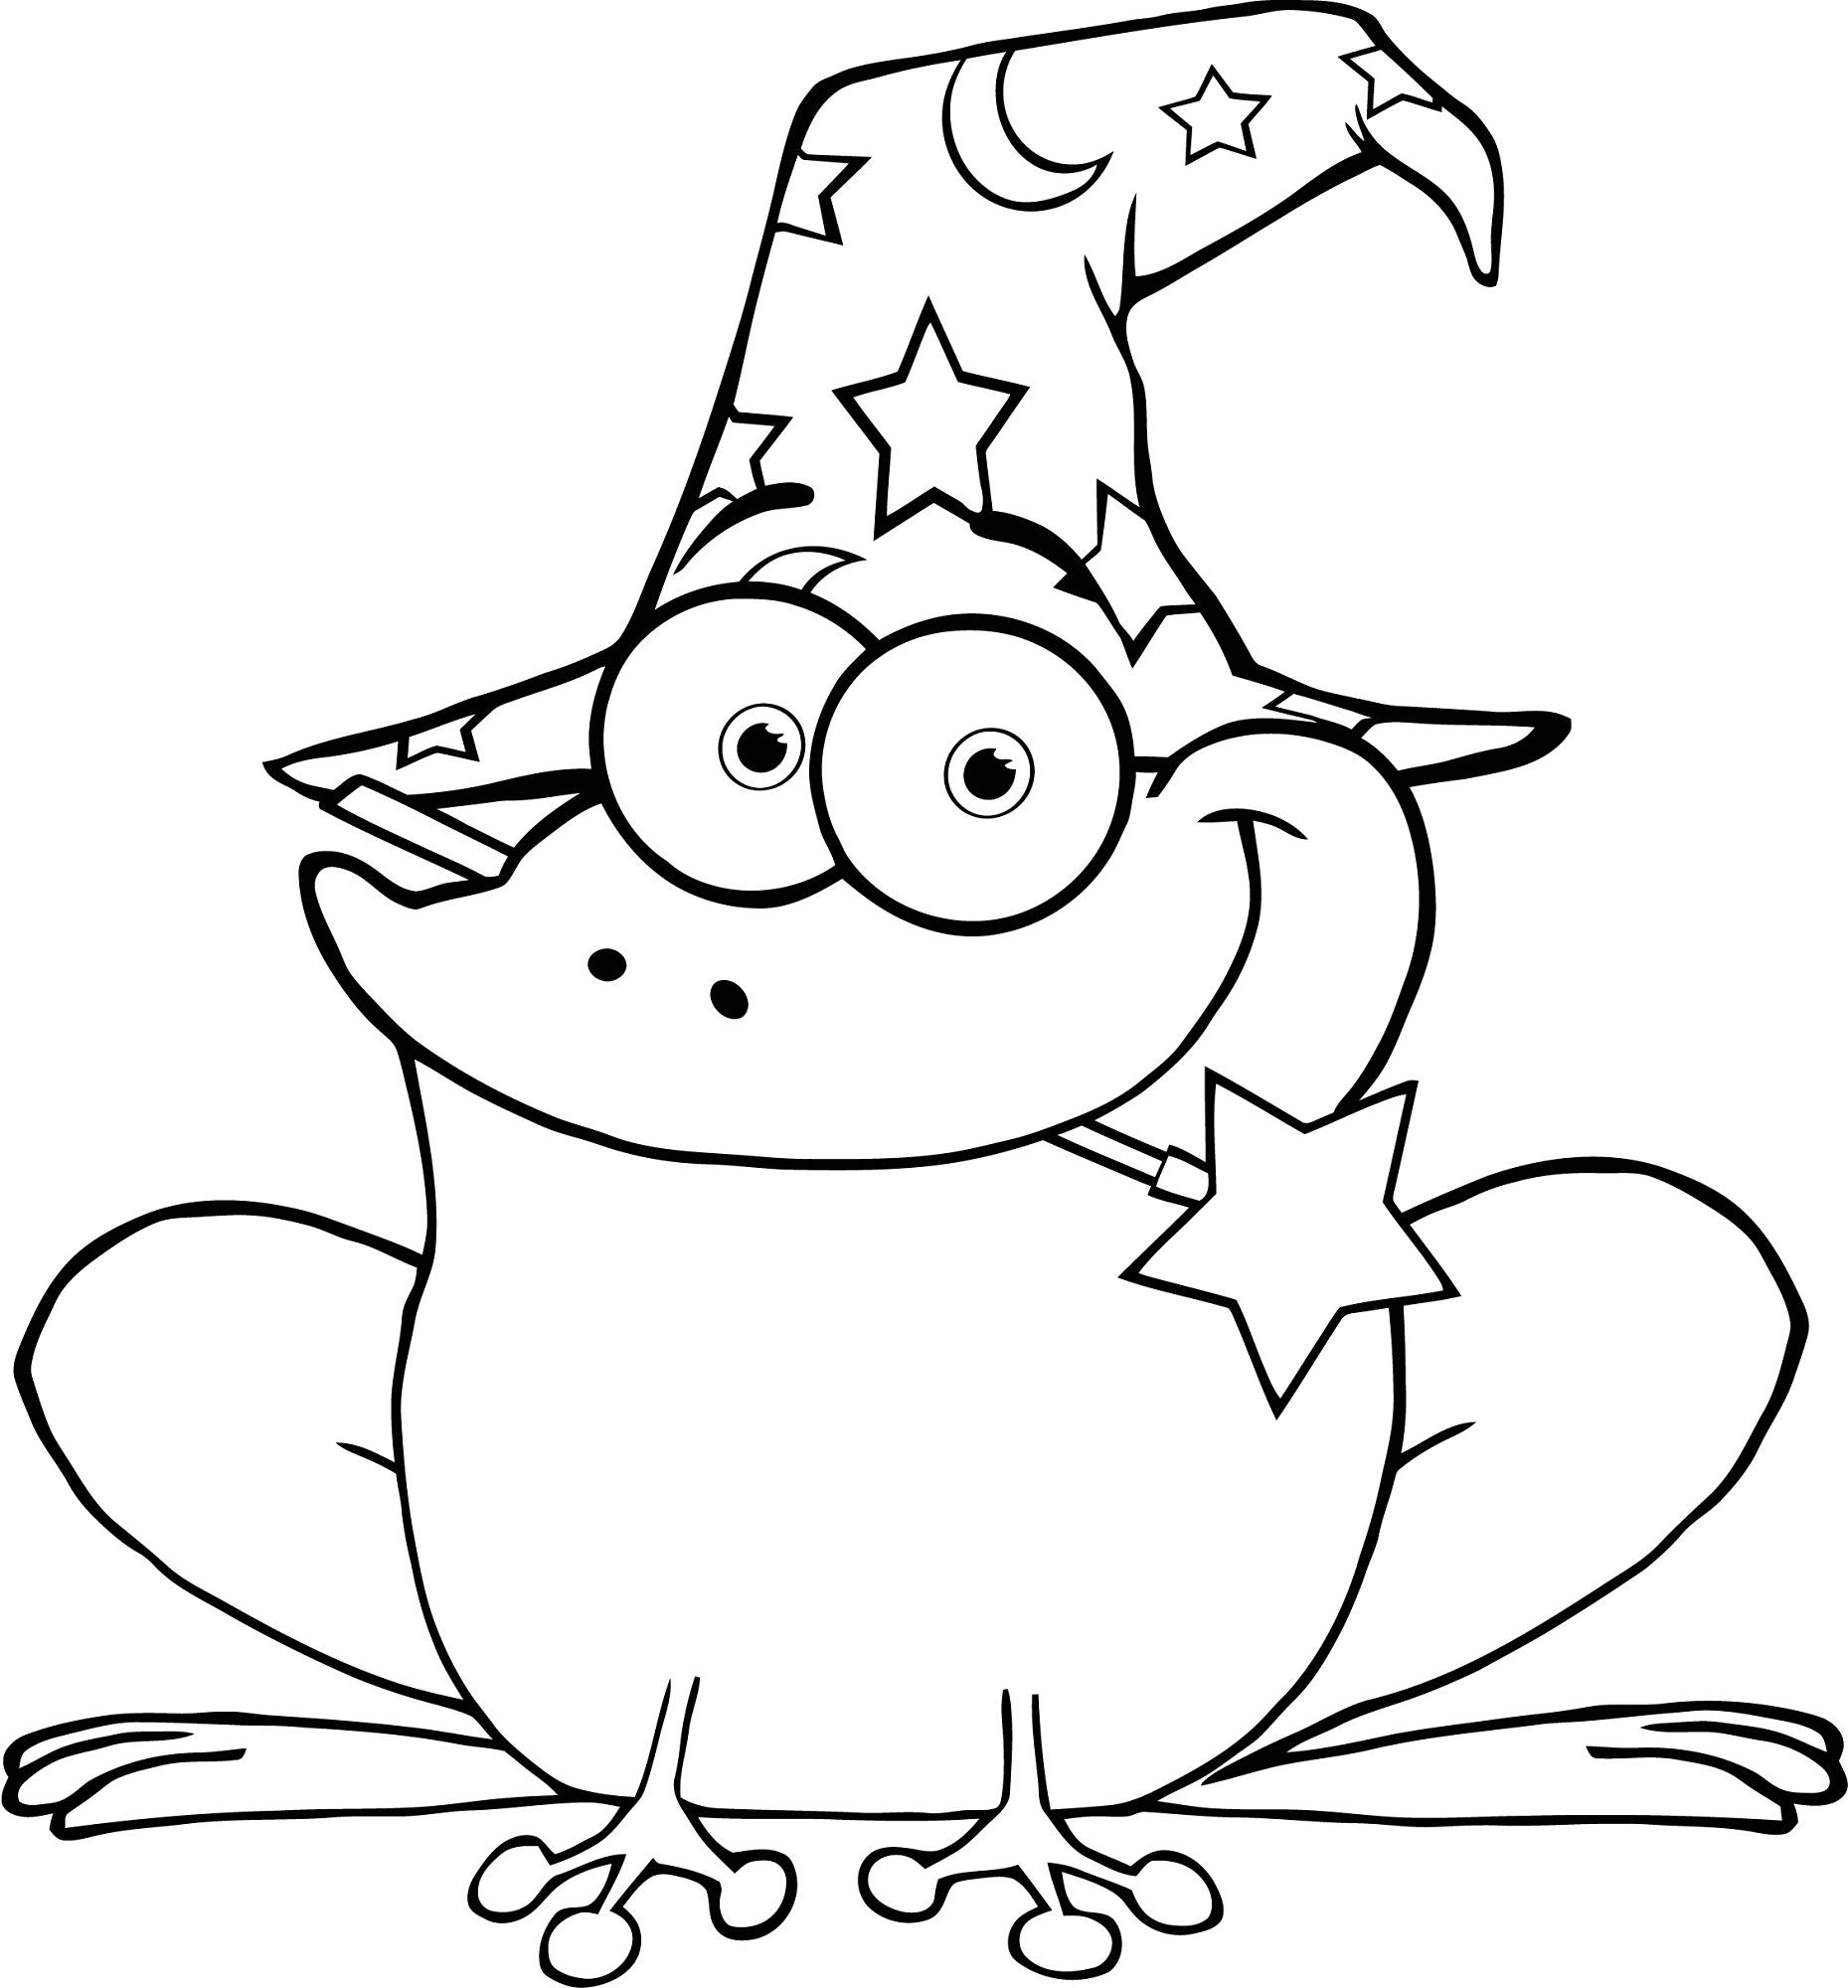 frog coloring pages to print print download frog coloring pages theme for kids to frog print pages coloring